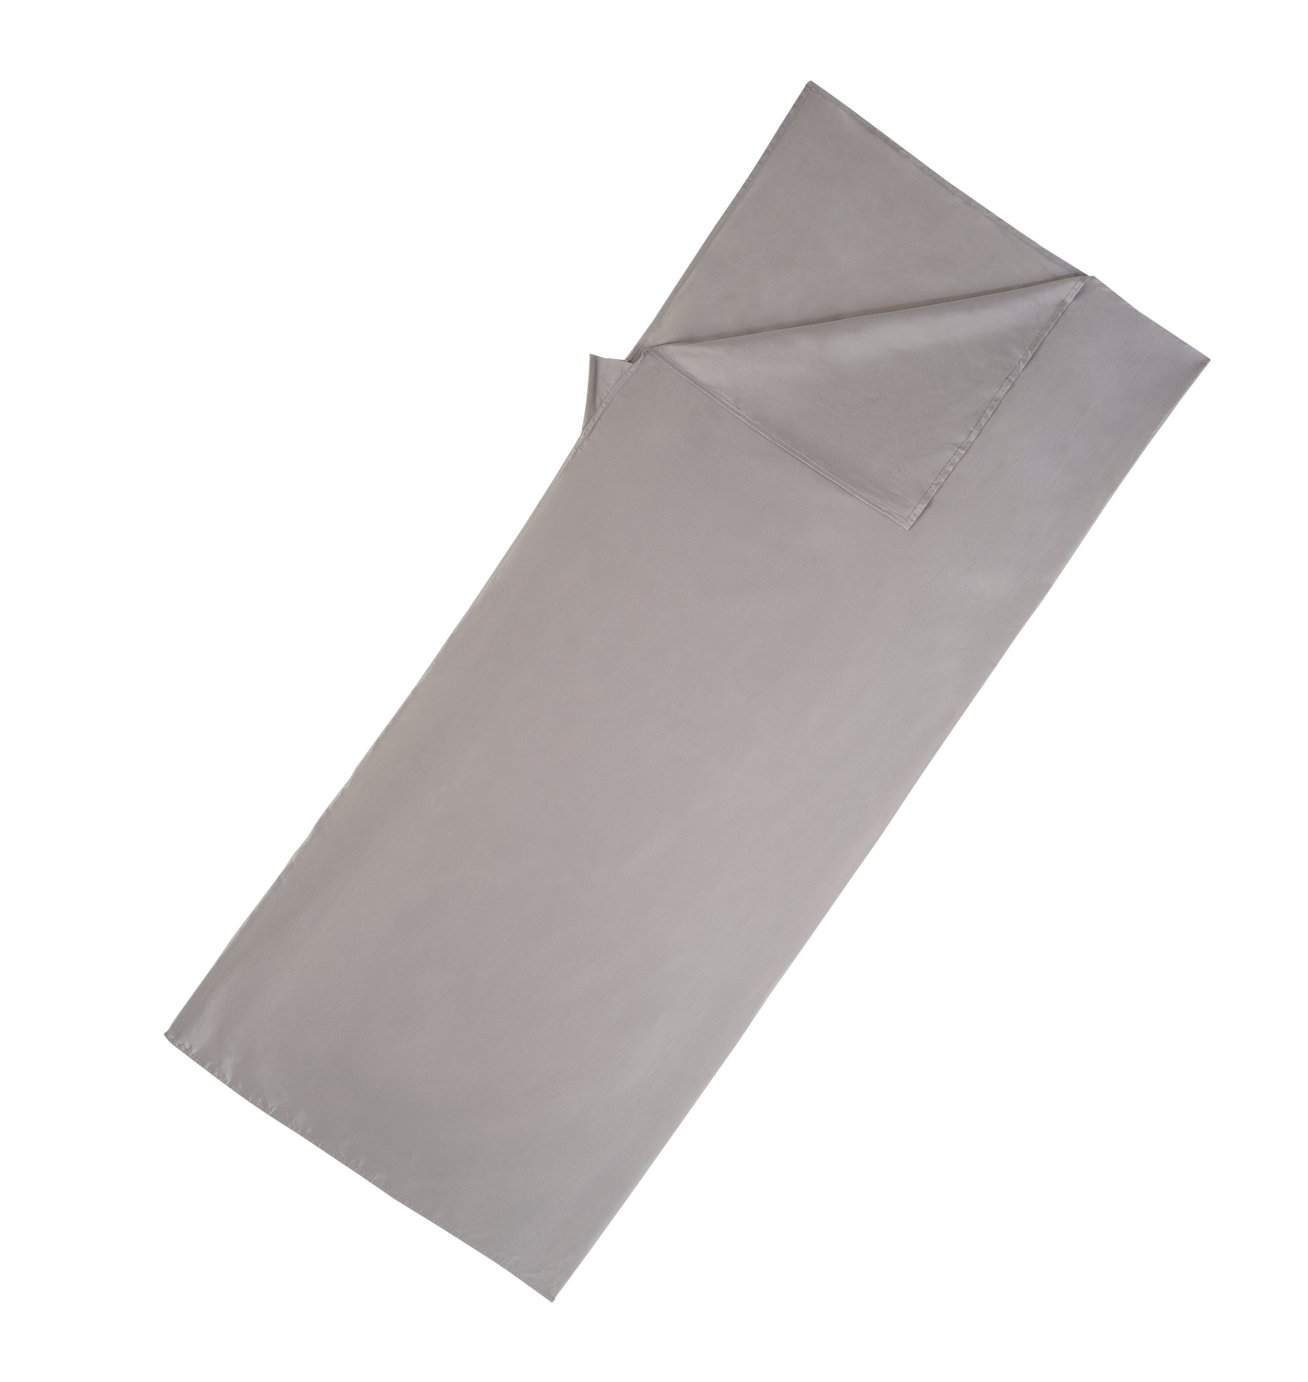 Sleeping Bag Liner - Single